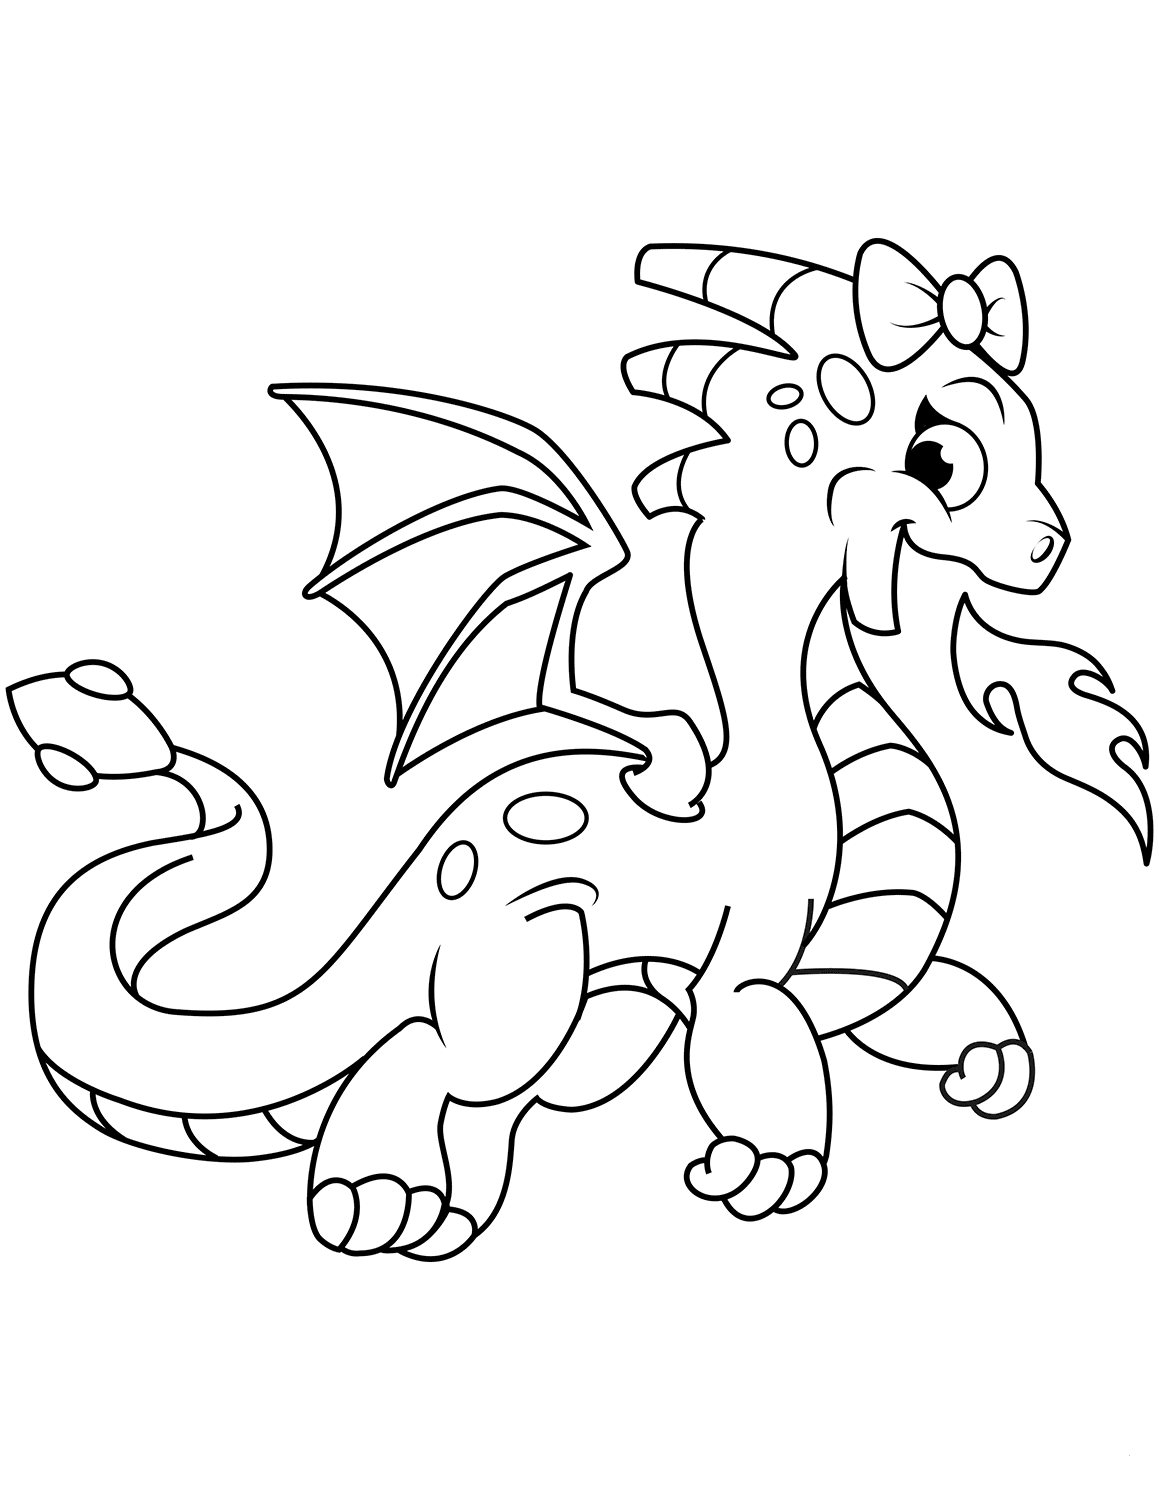 printable dragon pictures dragon template animal templates free premium templates printable dragon pictures